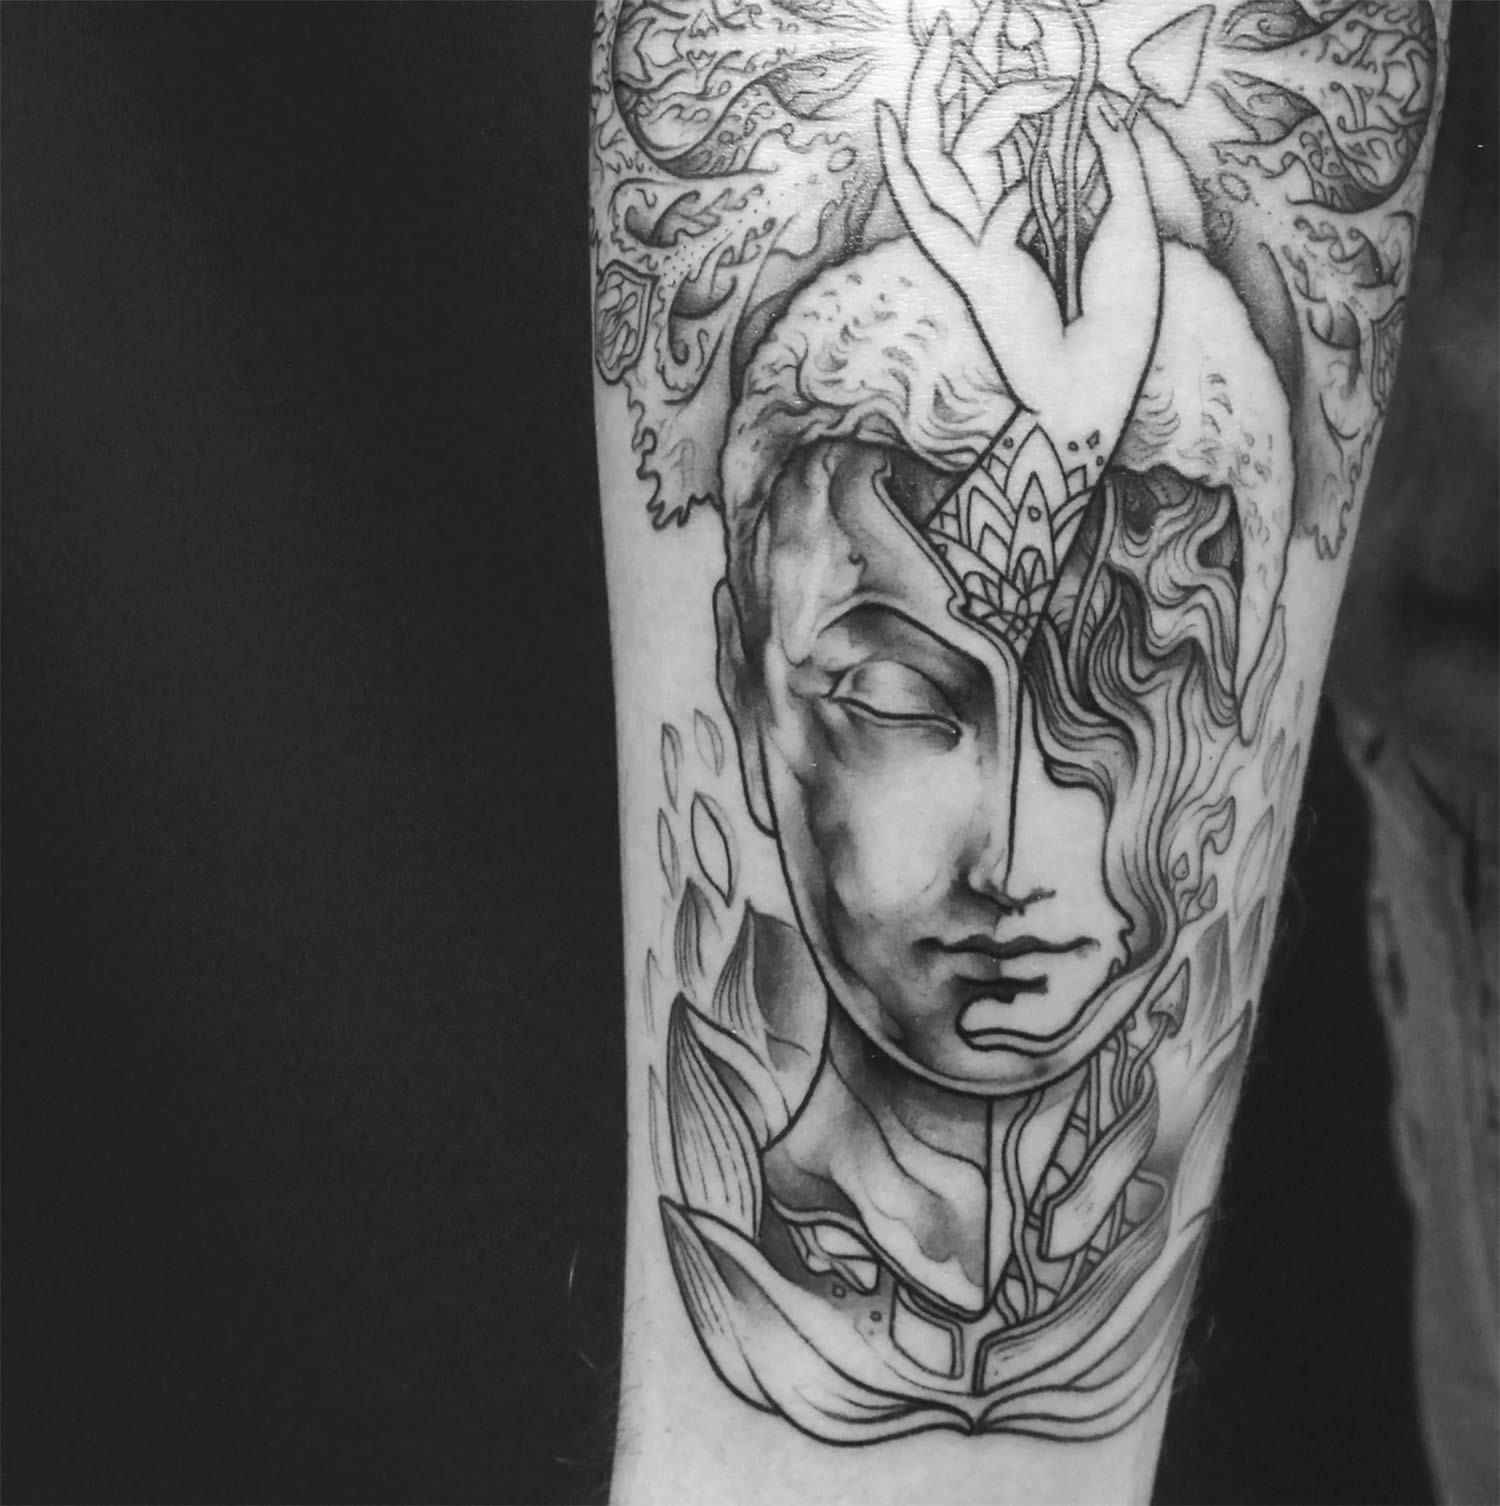 Tattoos By Nick Broslavskiy Make You Question Reality Tattoos Graphic Design Agency Graphic Design